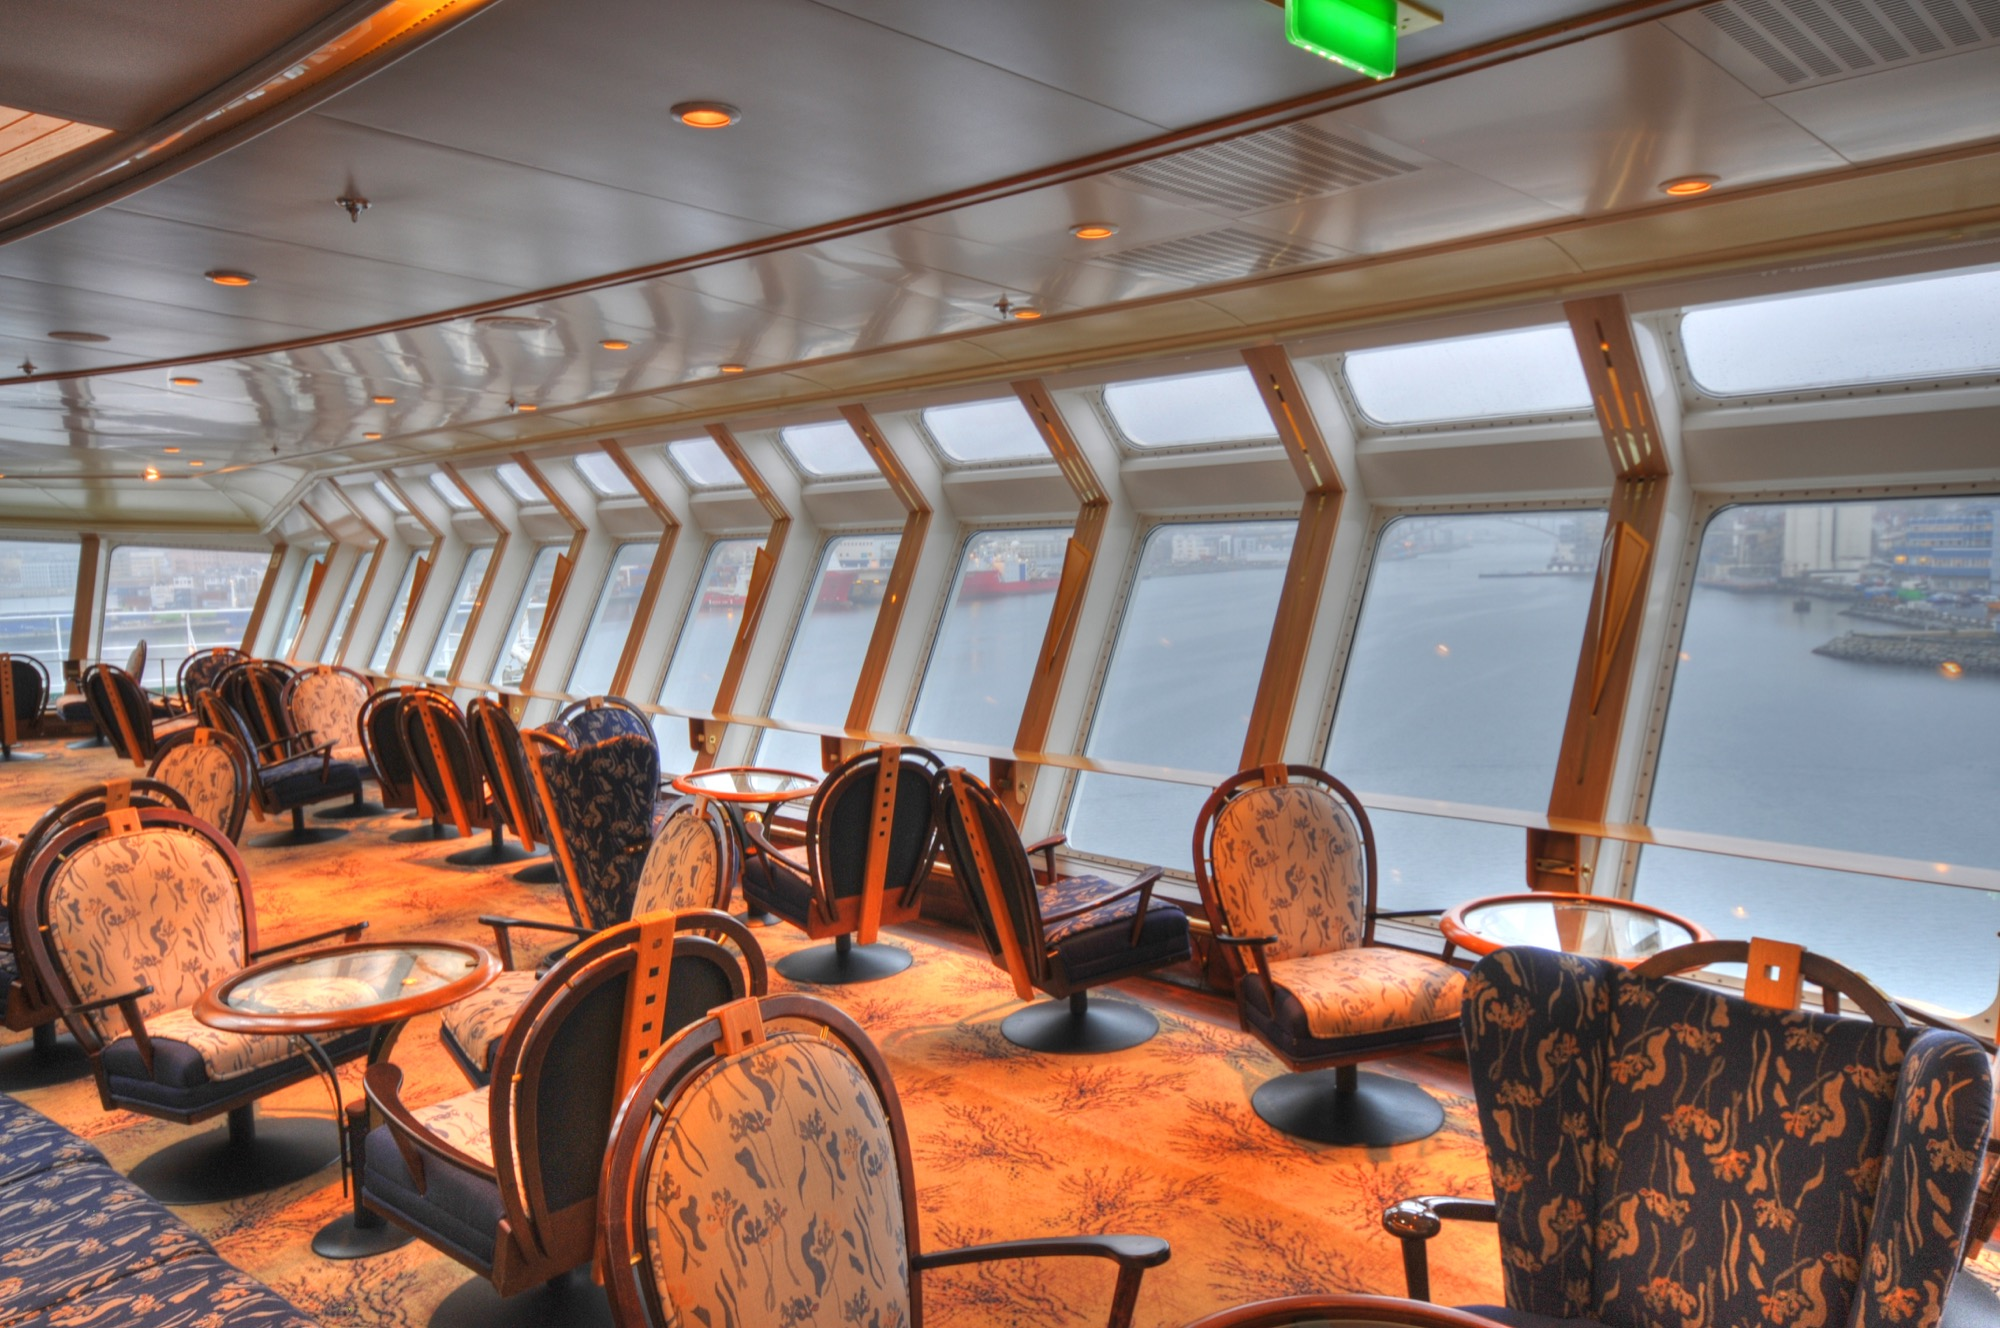 Hurtigruten Cruise Lines MS Finnmarken Interior Panorama Lounge 2.jpg